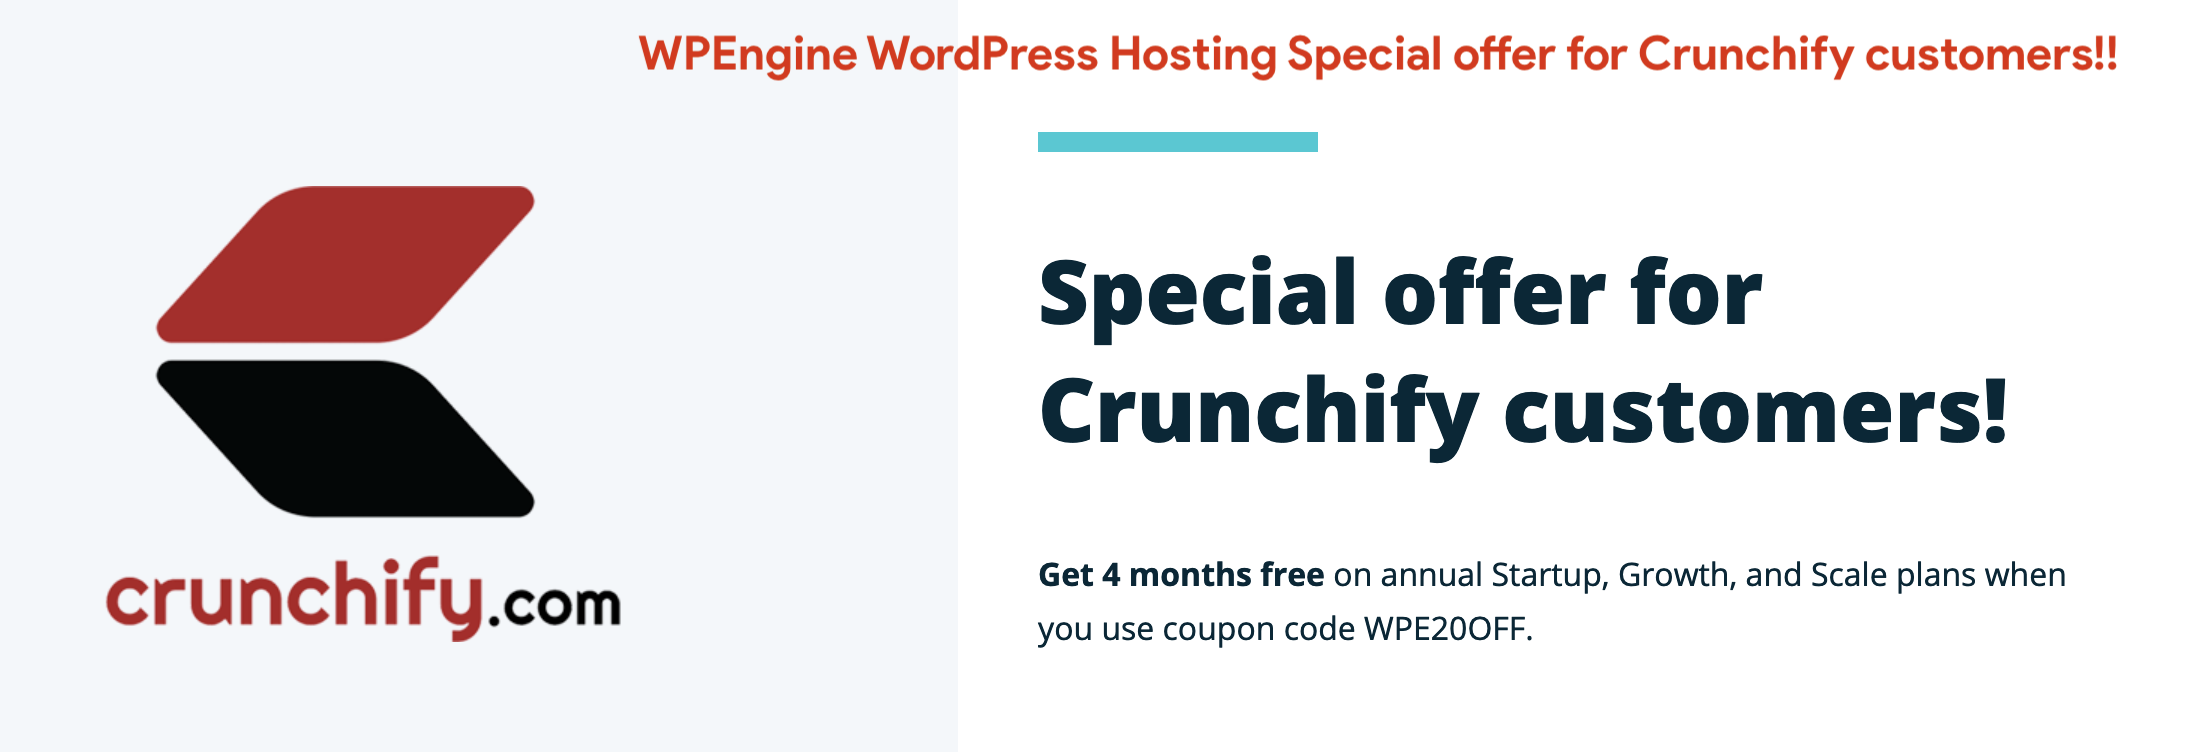 WPEngine WordPress Hosting Special offer for Crunchify customers